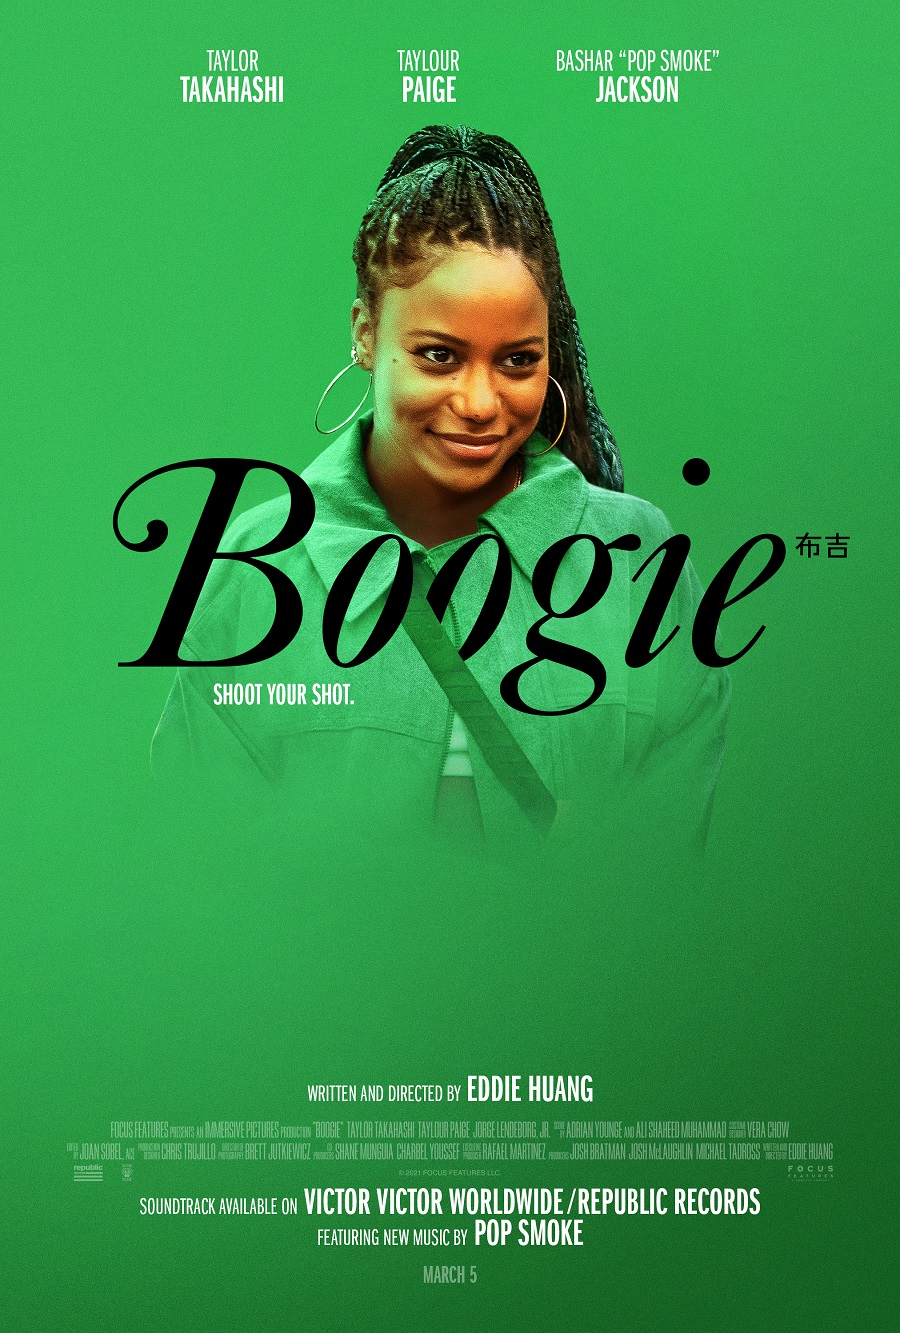 BOOGIE, Taylour Paige